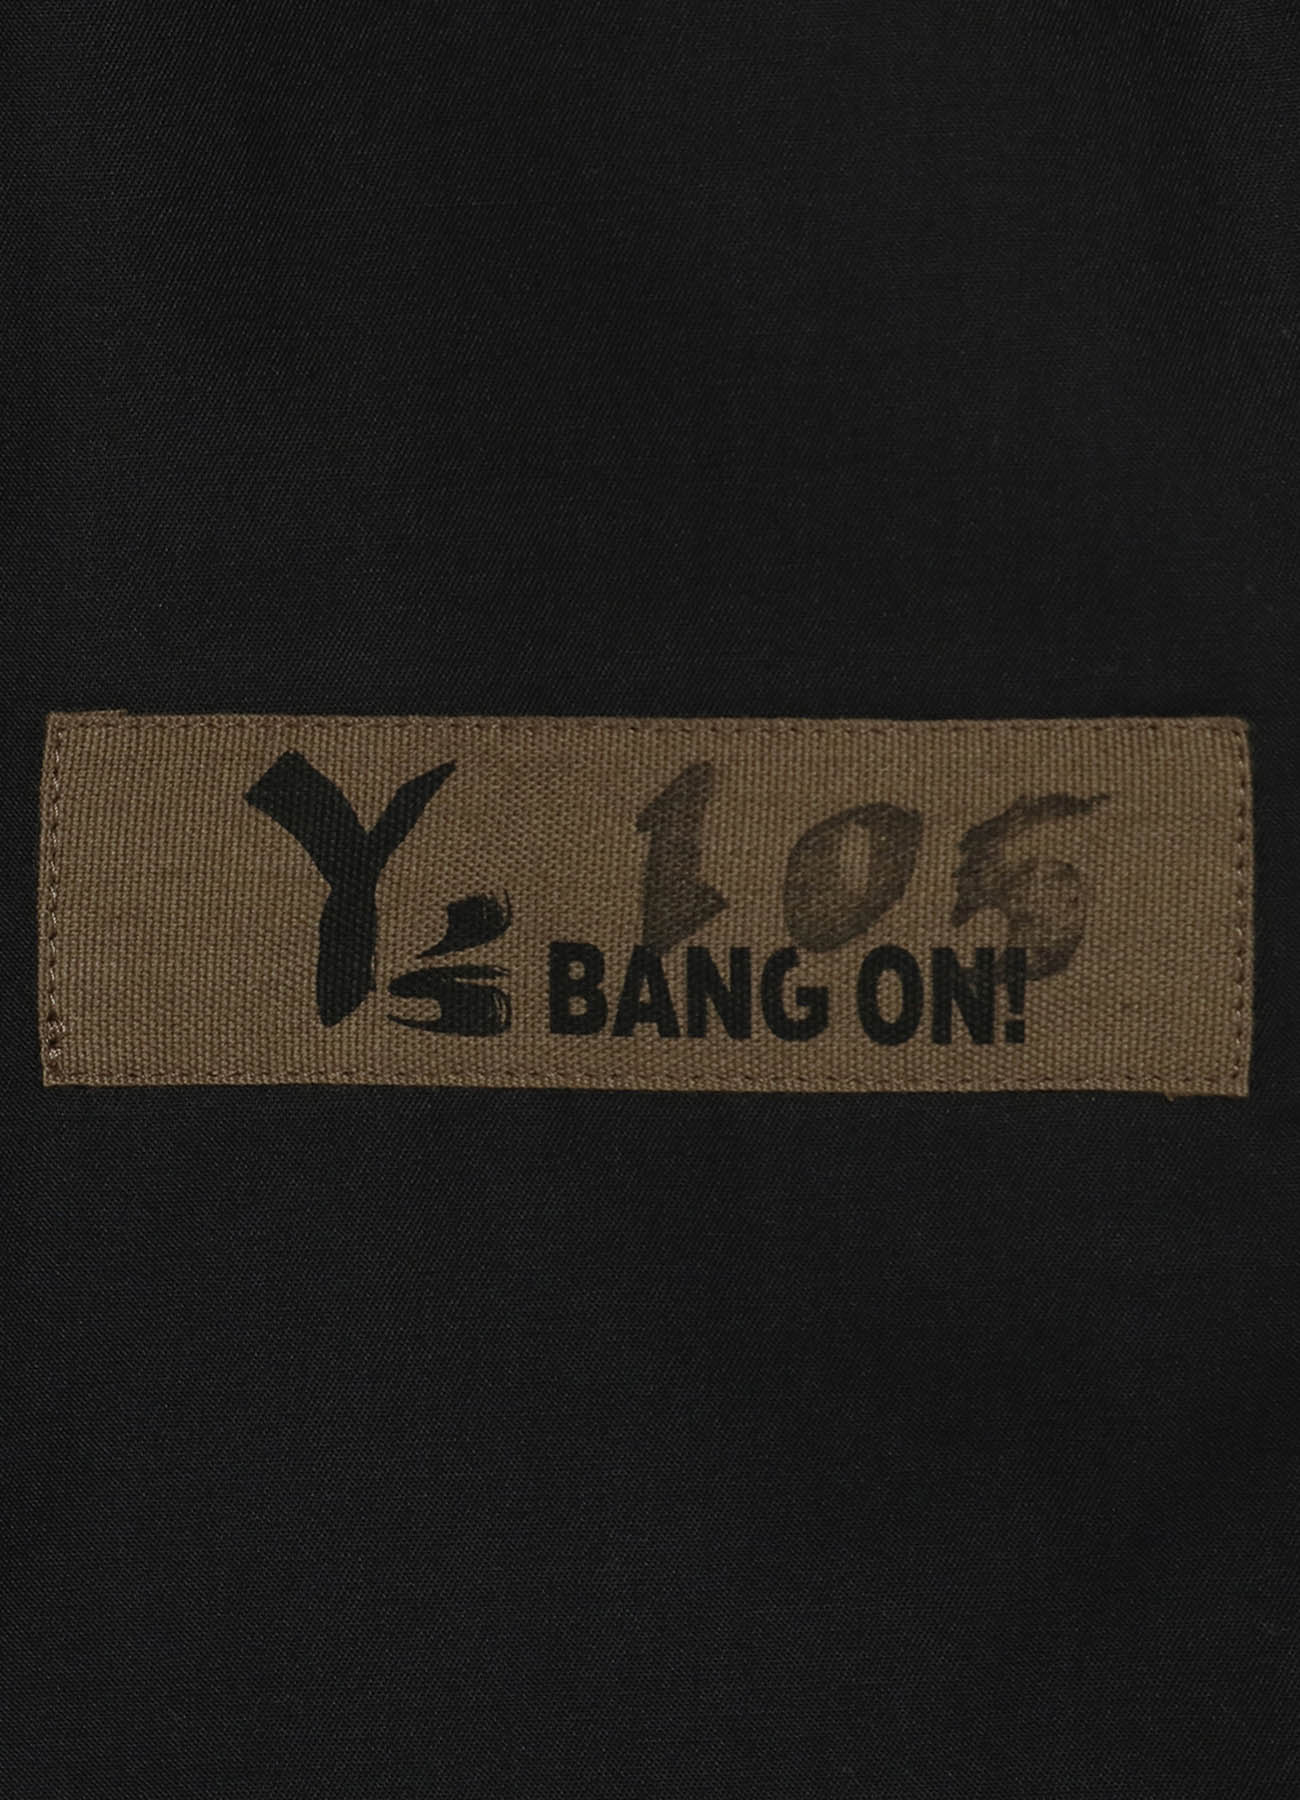 Y's BANG ON!No.105  Bandage Pants Check